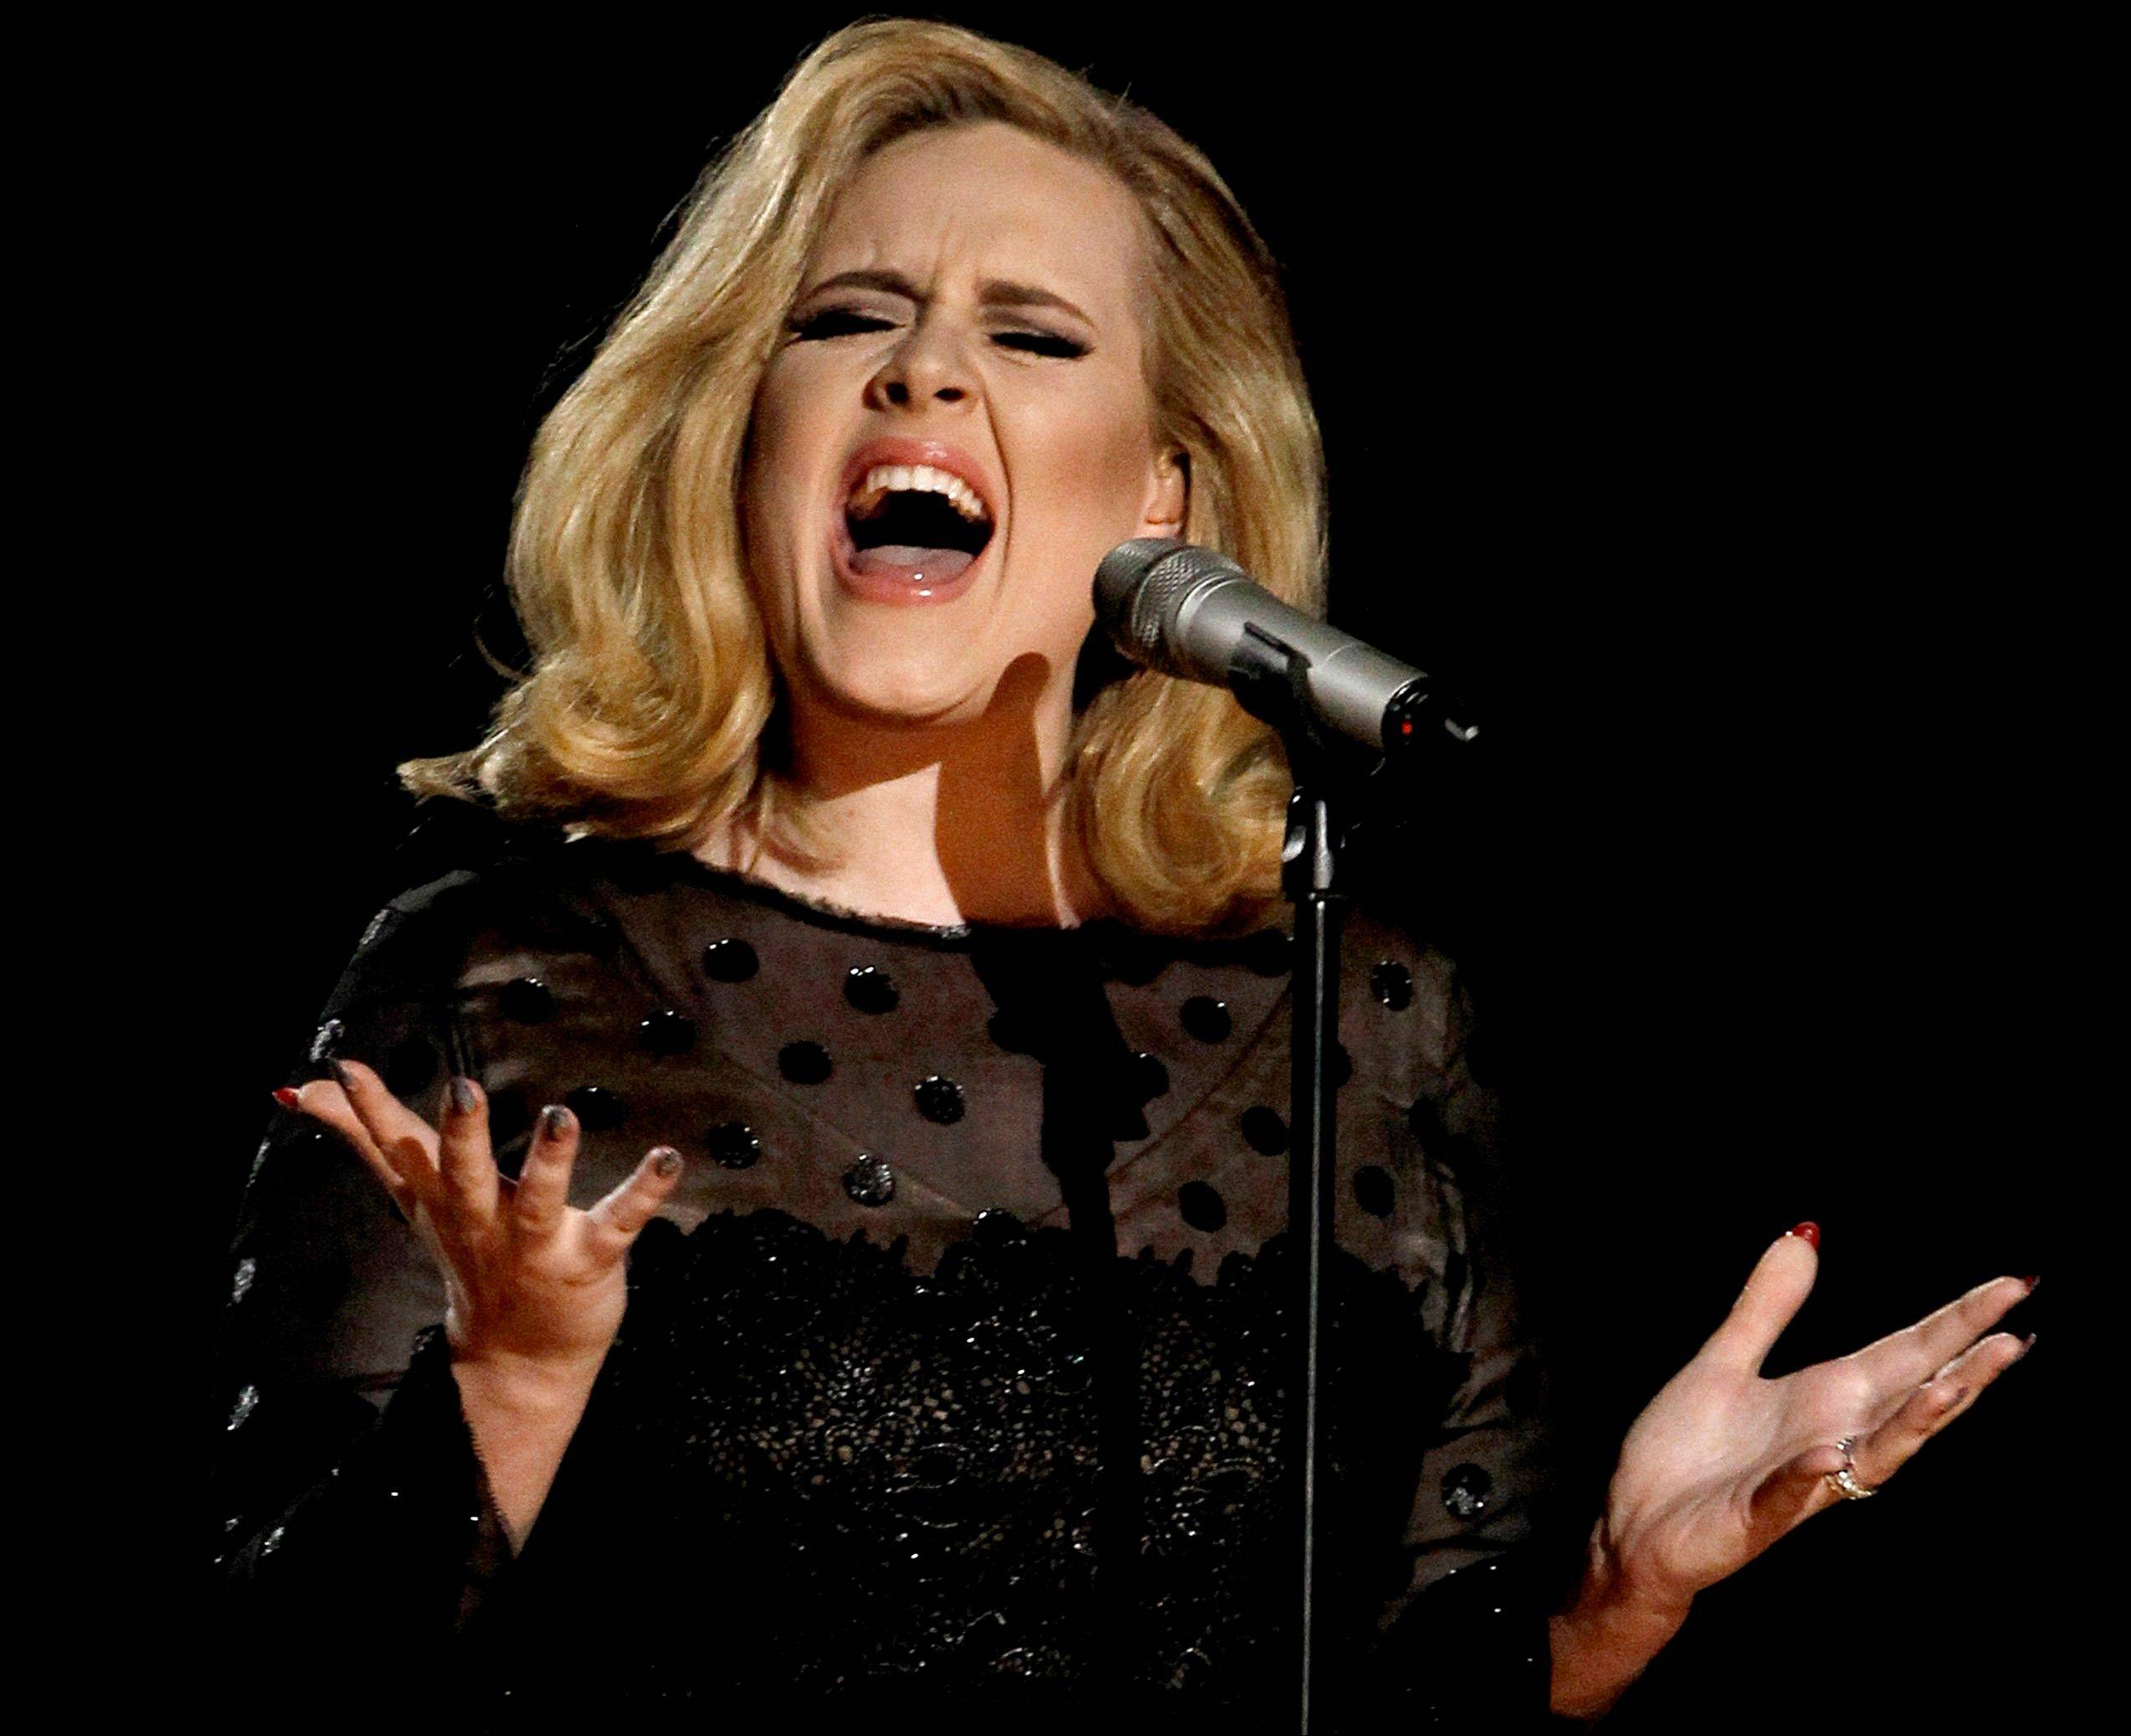 Adele�s �21� was the highest-selling album in the U.S. for the second consecutive year, according to 2012 sales figures released by Nielsen SoundScan on Thursday.